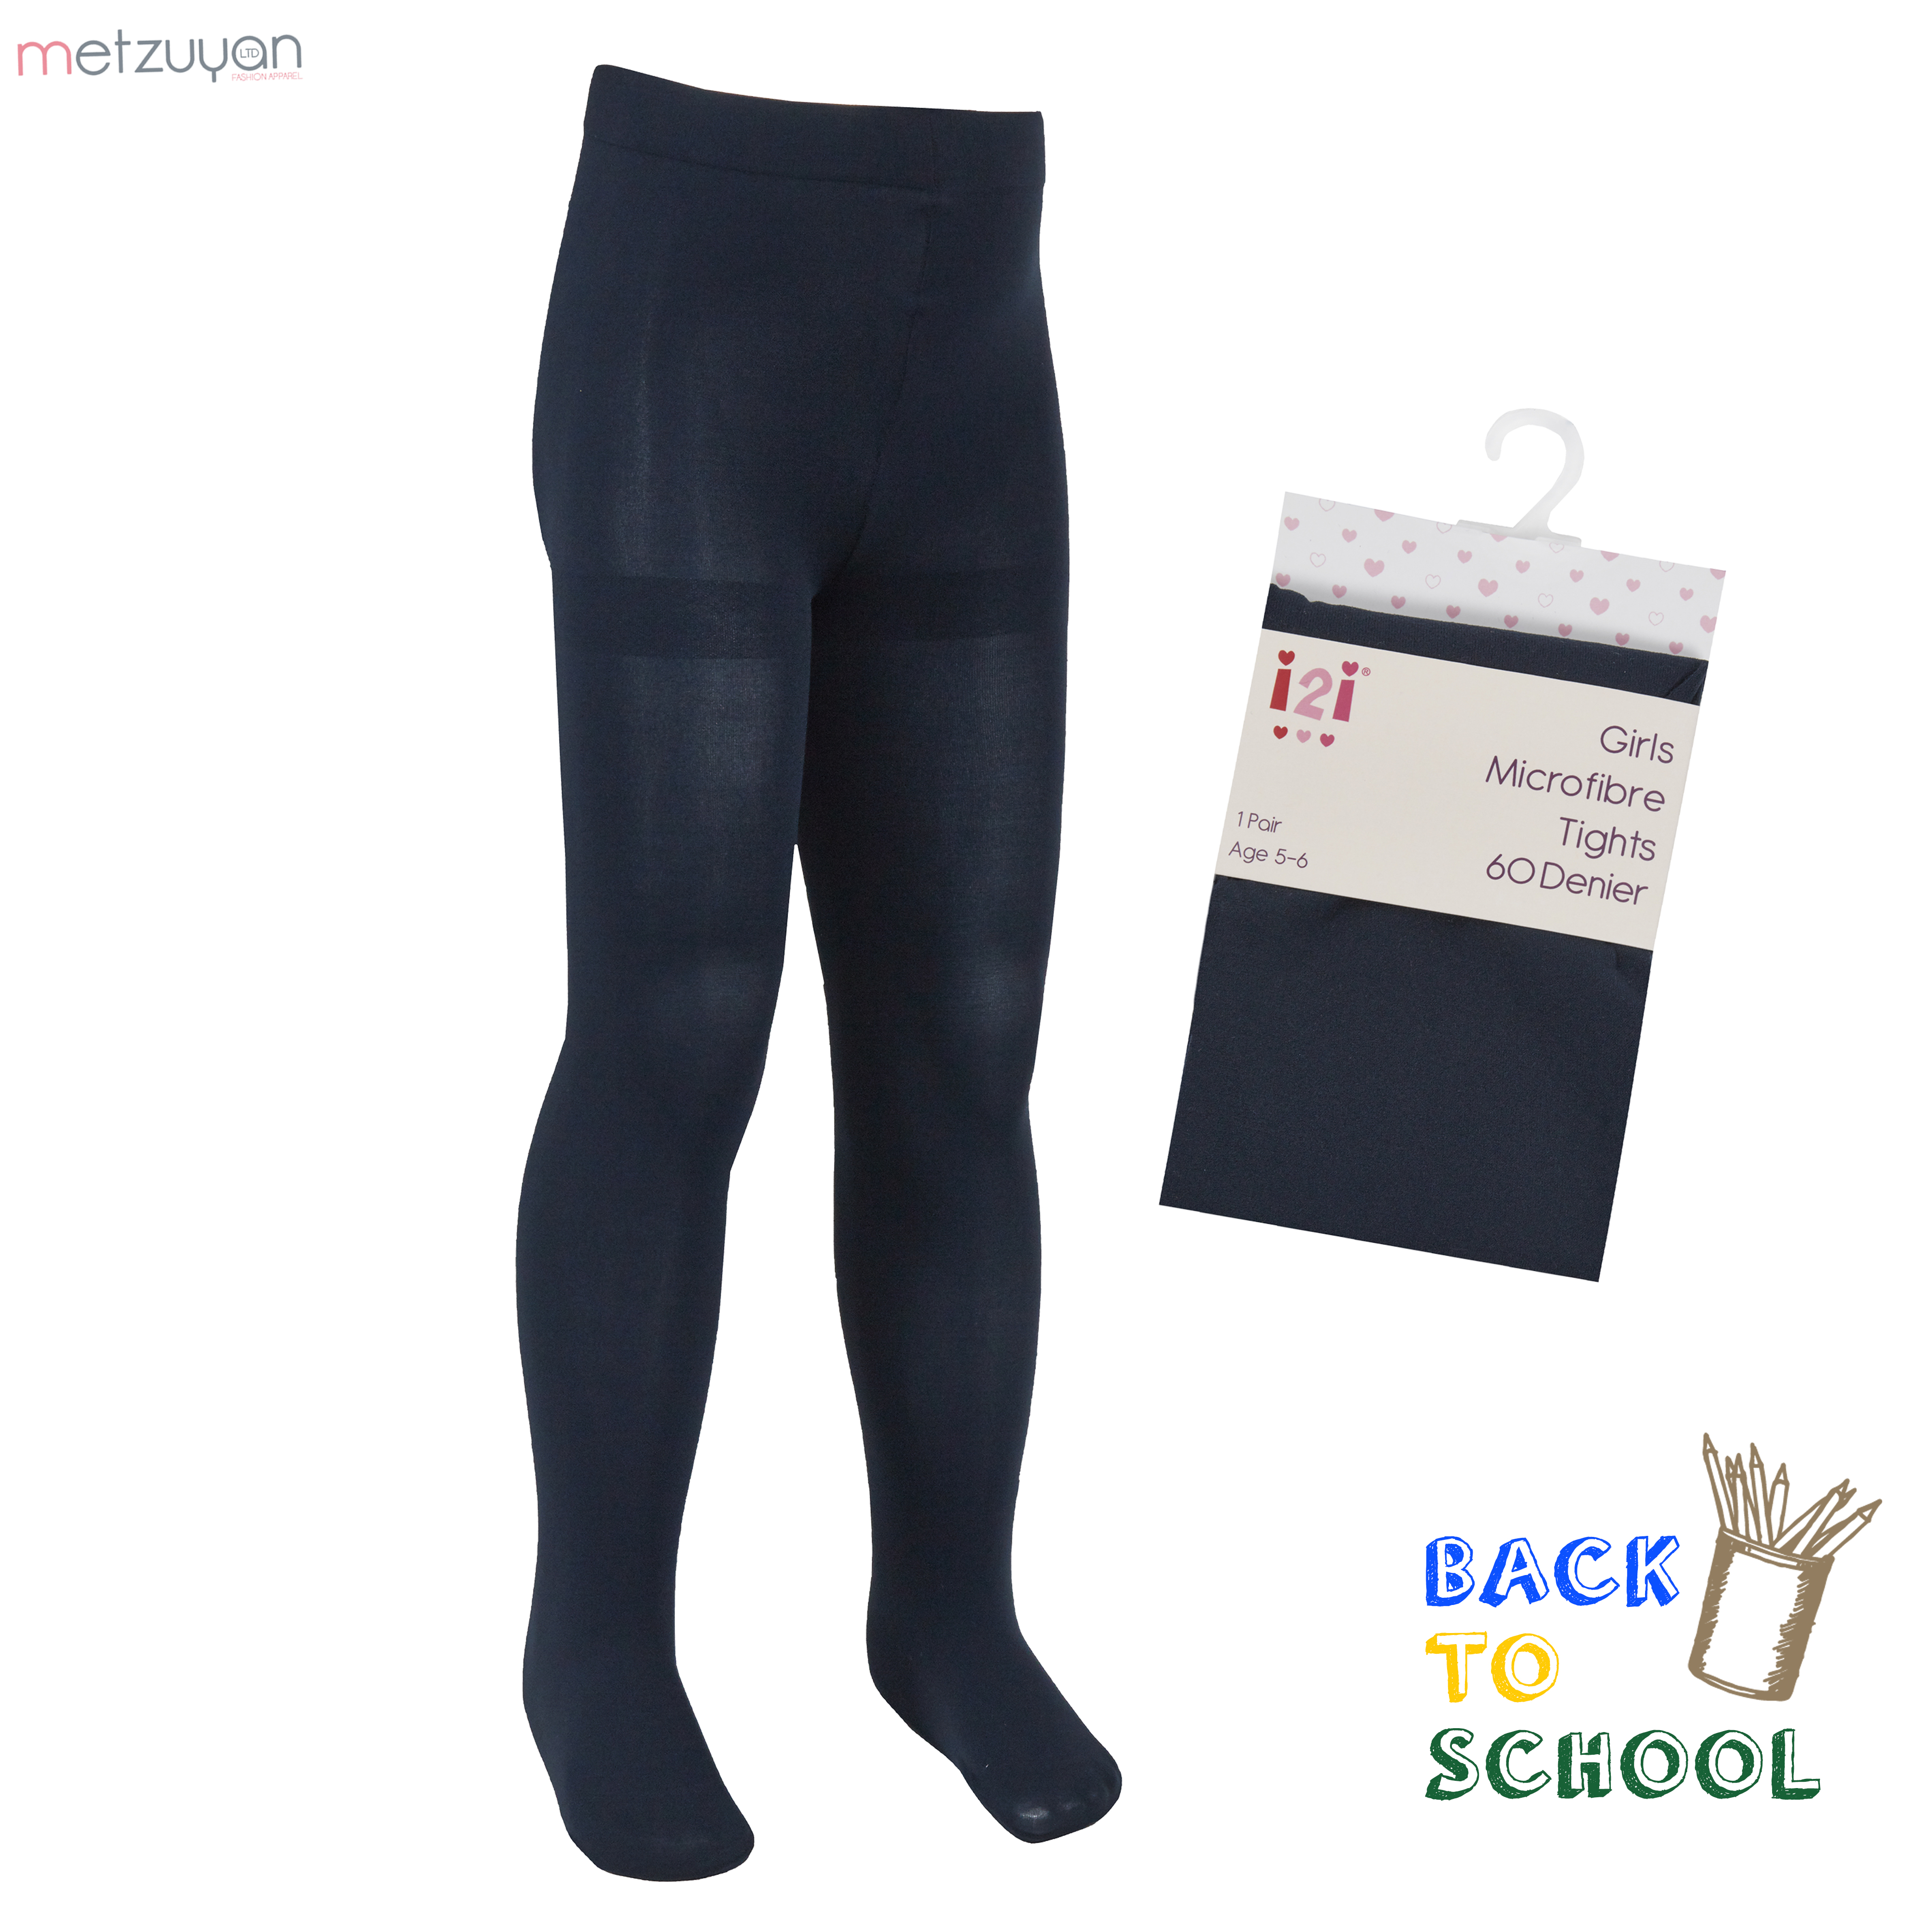 New Girls And Women 70 Denier Stretchy Opaque Fashion Tights Back To School